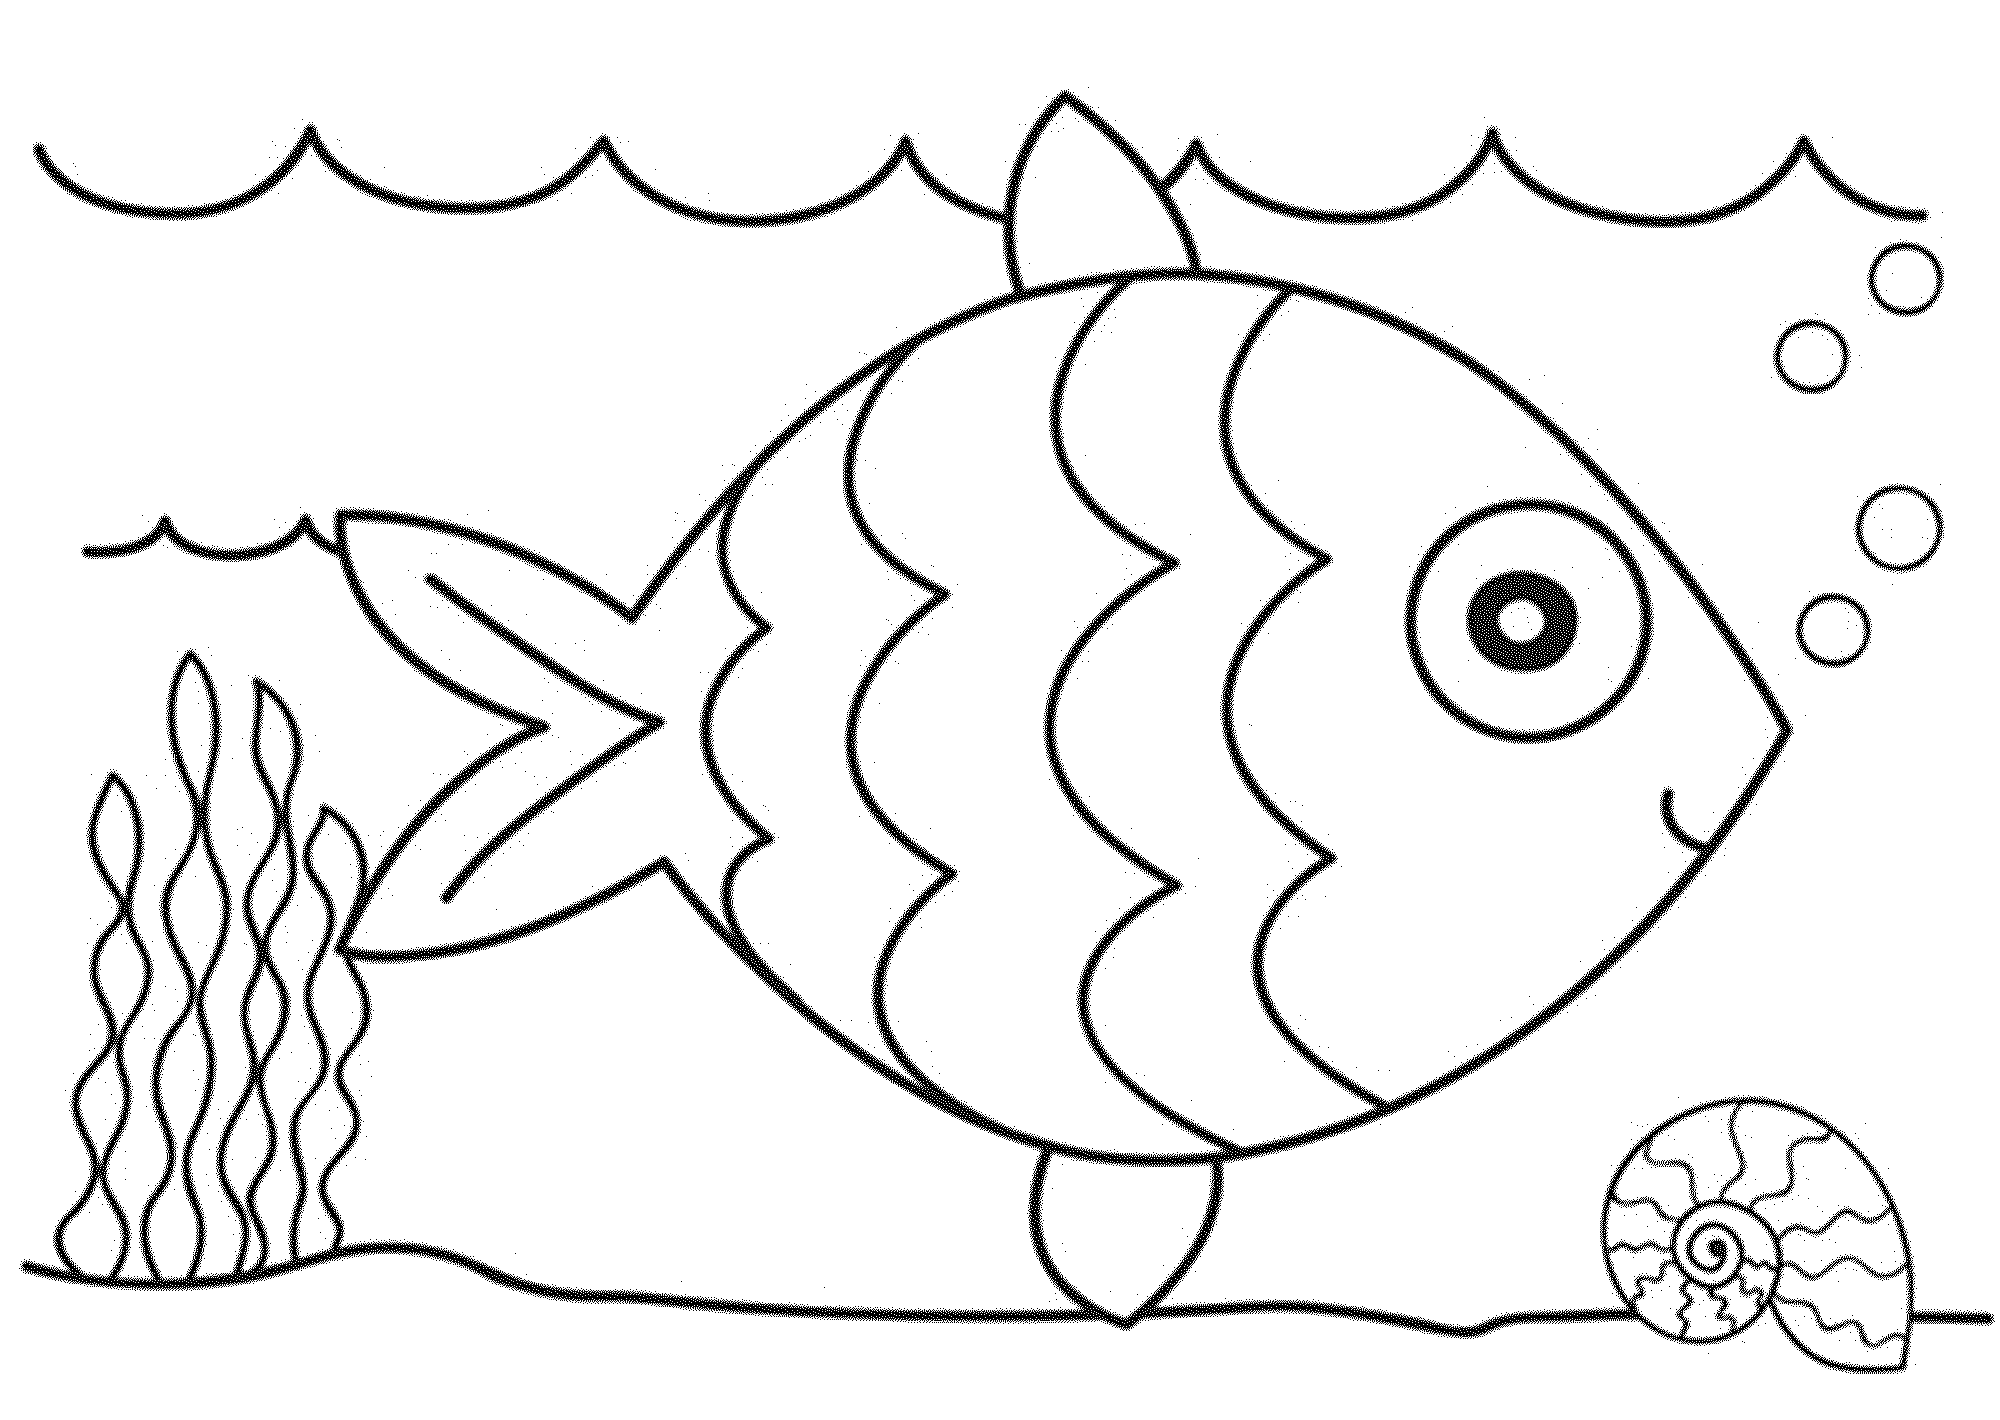 Bass Fish Coloring Pages Printable Kids Colouring Pages Clip